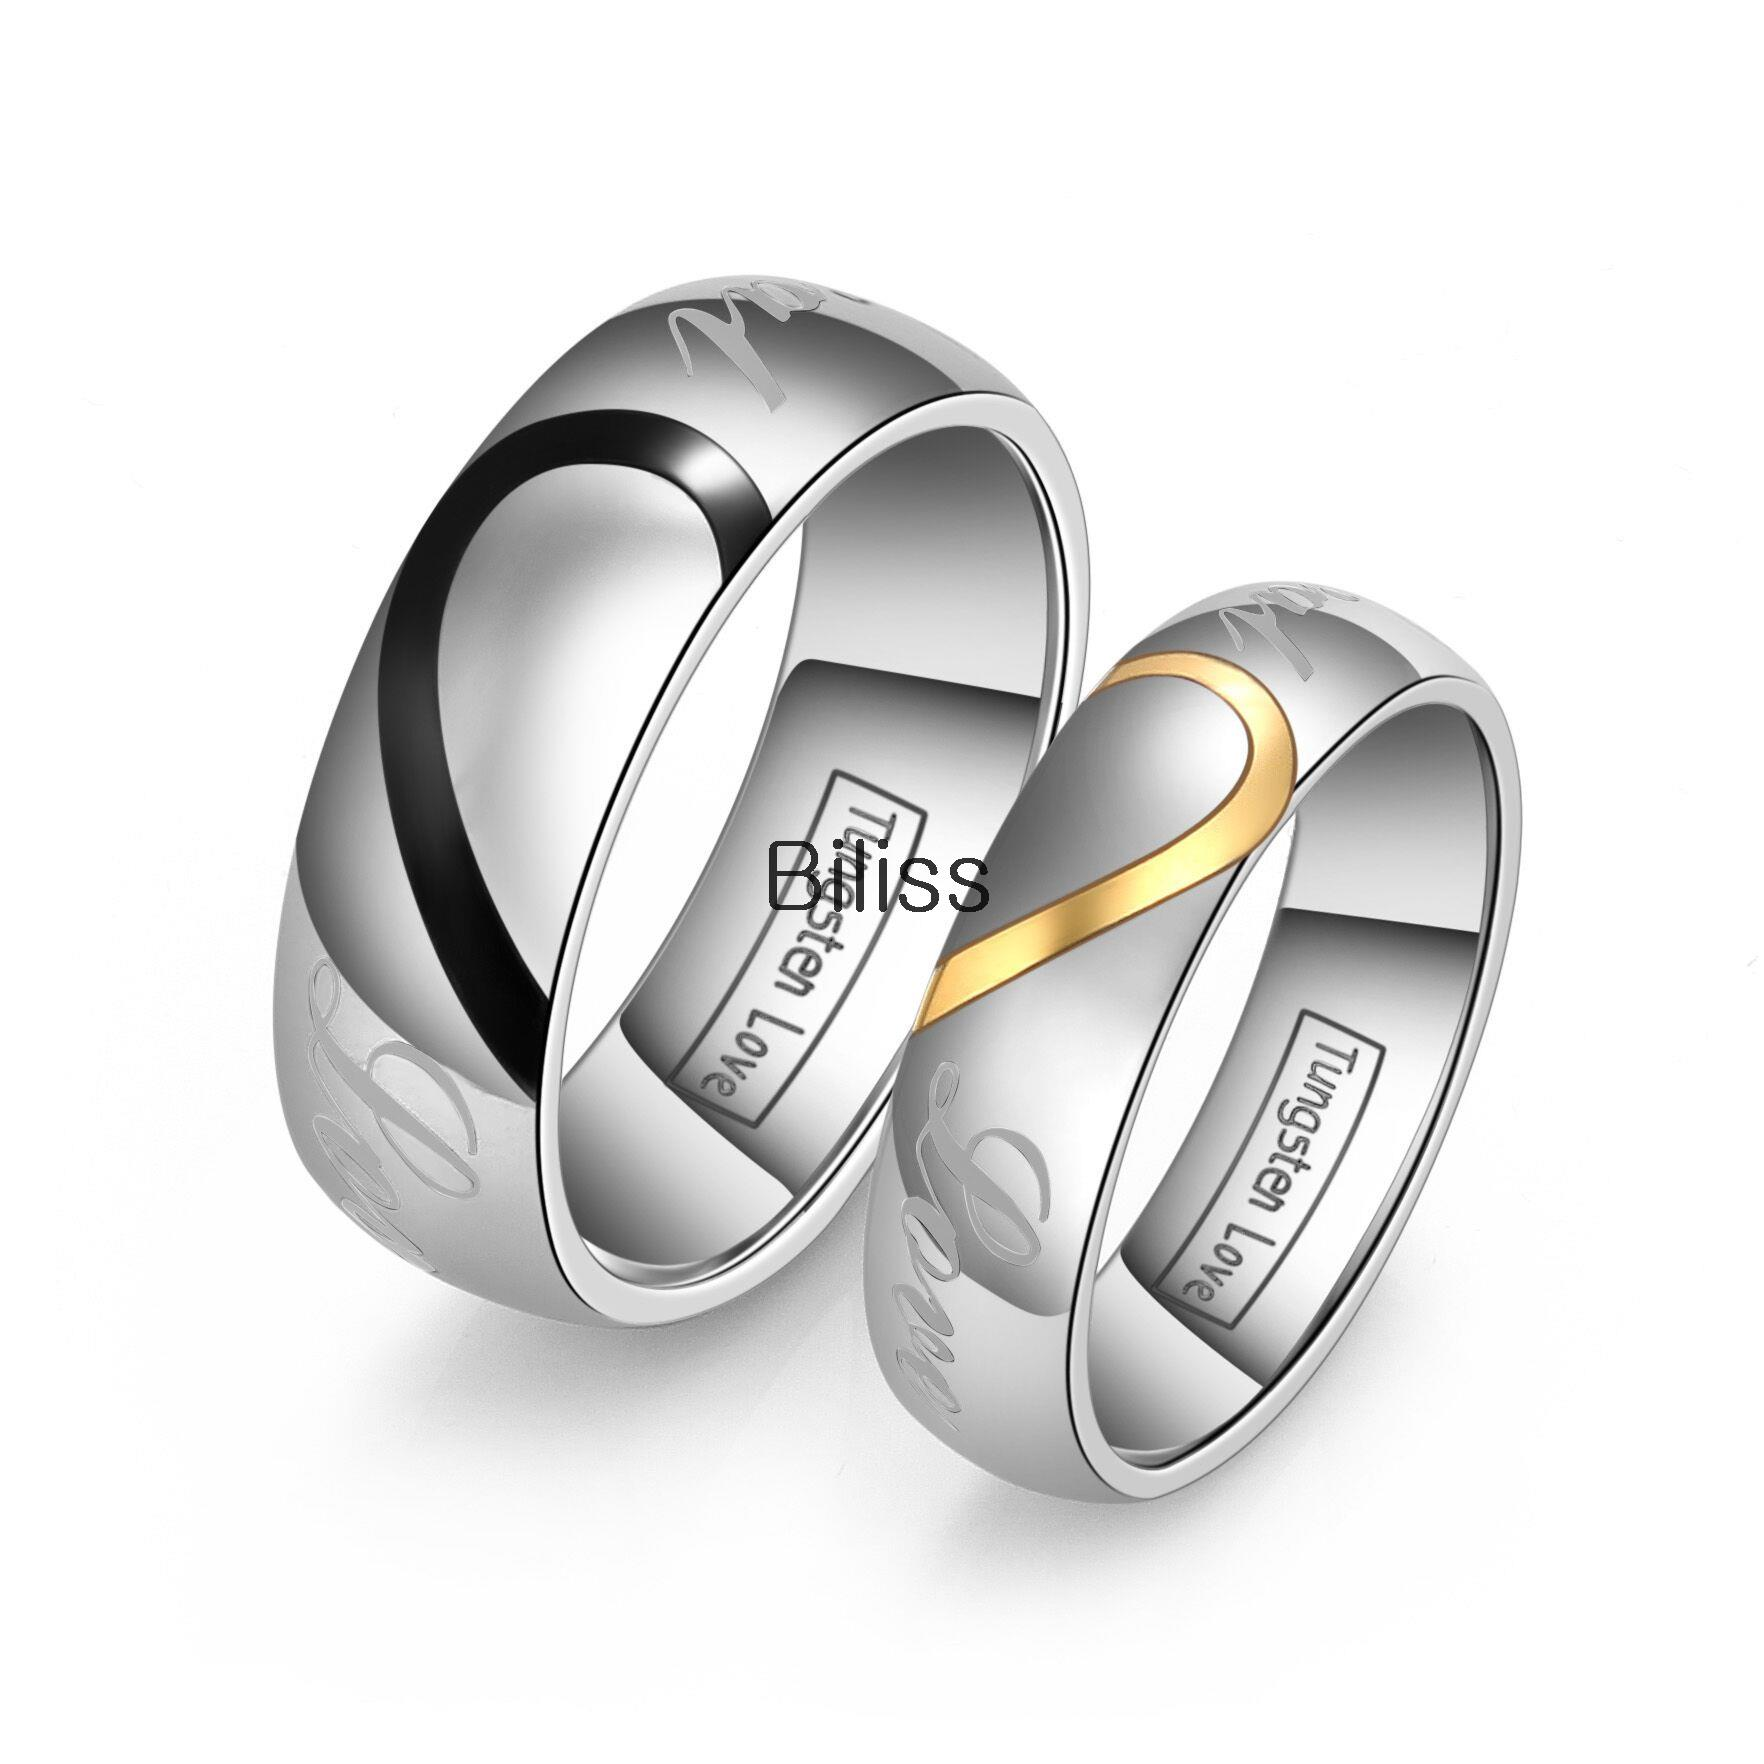 Tremendous Matching Heart Tungsten Carbide Men Women Promise Engagement Ring Wedding Rings Rings From Jewelry On Matching Heart Tungsten Carbide Men Women Promise Love